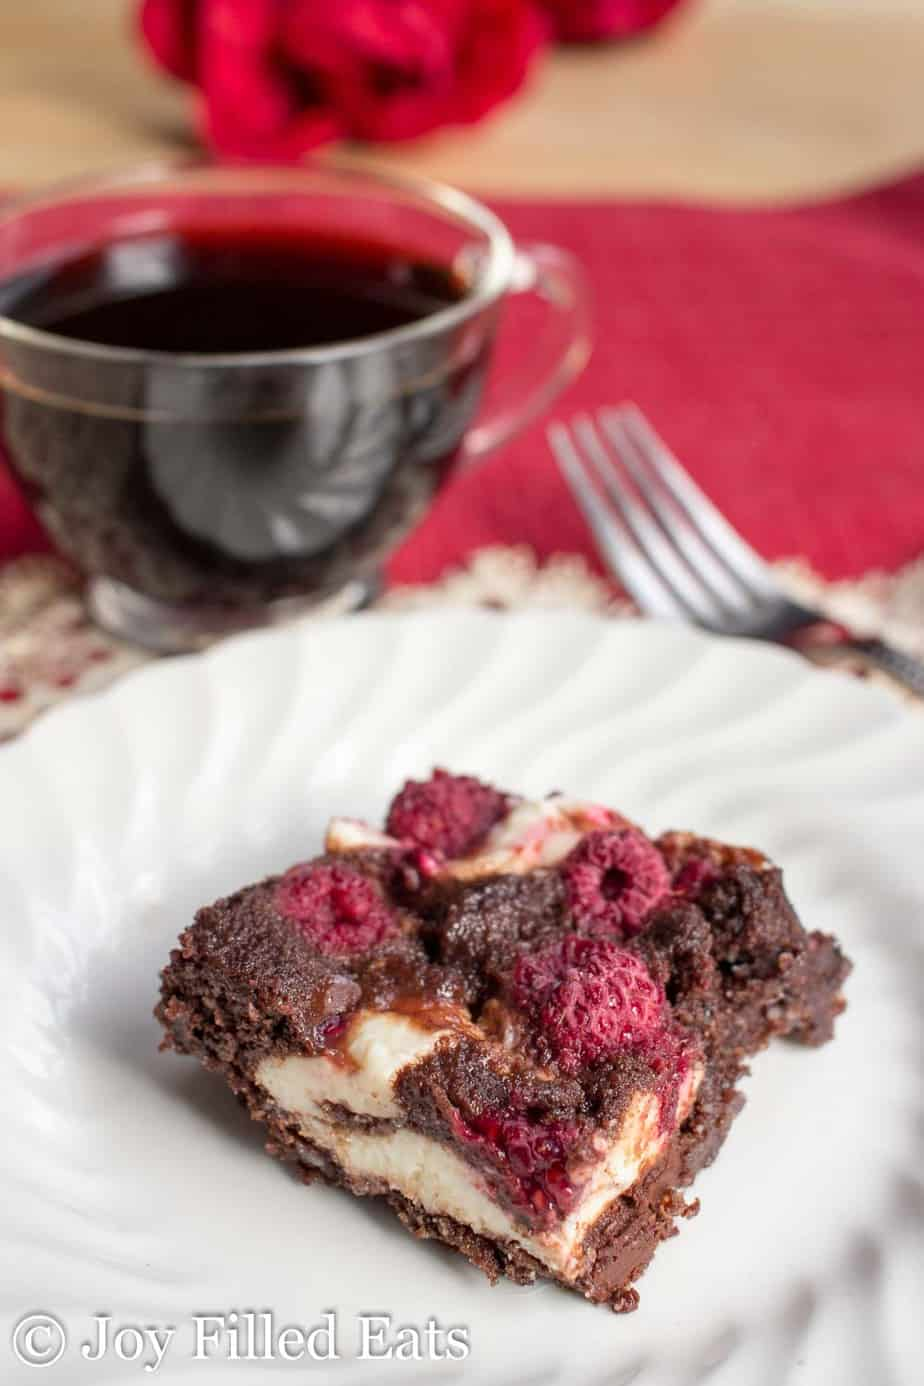 Raspberry Cheesecake Brownies - Keto Low Carb. Dark Chocolate Raspberry Cheesecake Brownies are the perfect dessert or grab and go snack. With the flavors of chocolate, raspberries, and cheesecake they will be your new favorite treat. They are low carb, keto, grain-free, gluten-free, and sugar-free.